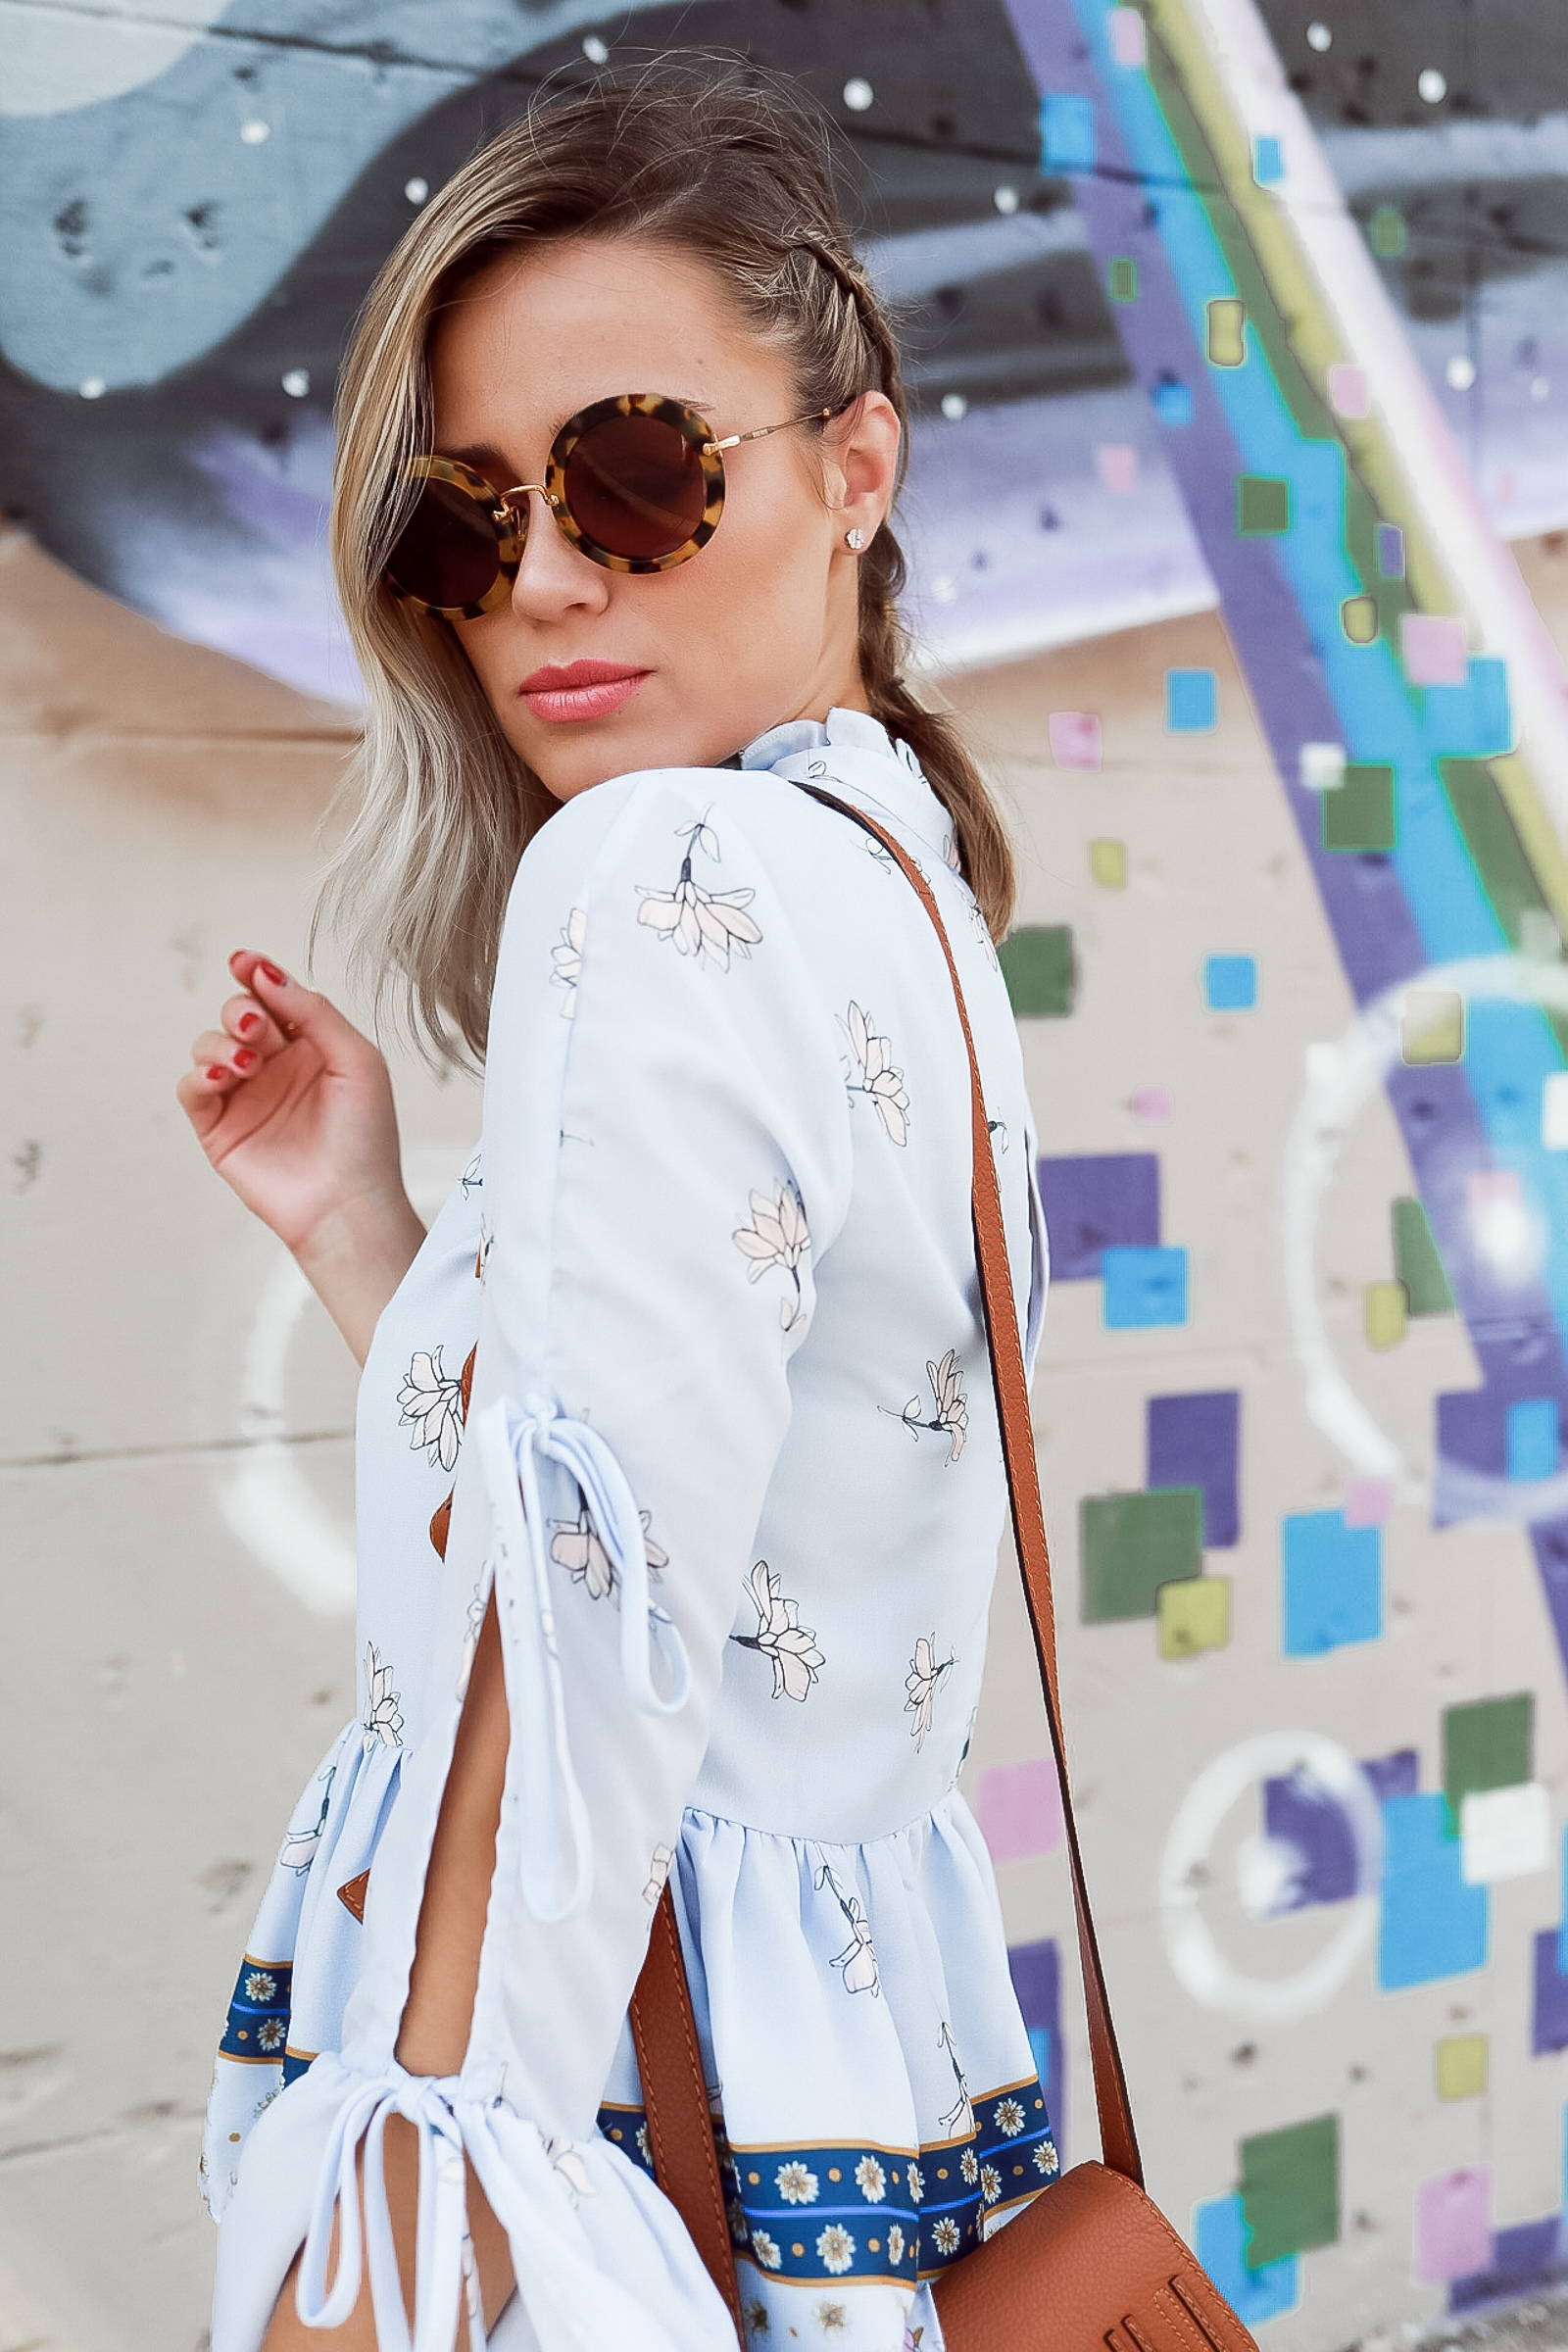 Houston fashion blogger Uptown with Elly Brown wears a floral top and Prada round sunglasses